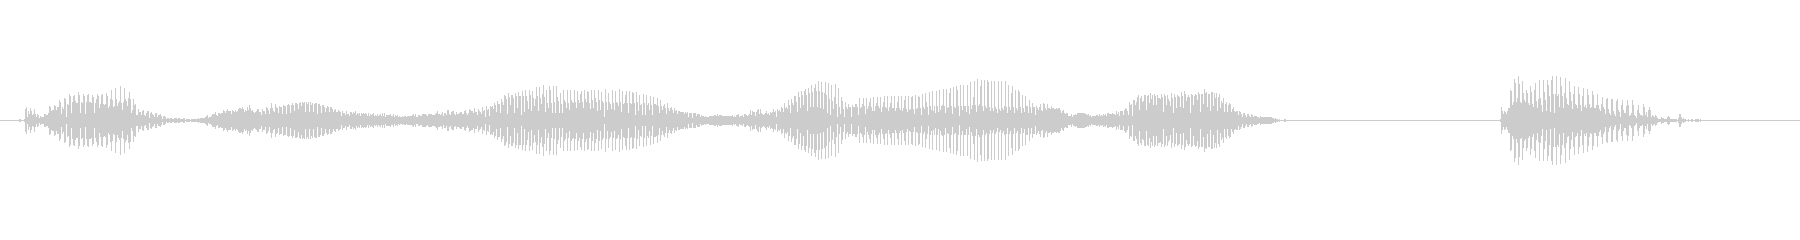 """Thank you for the feast"" 11 year old boy's unreproduced waveform"